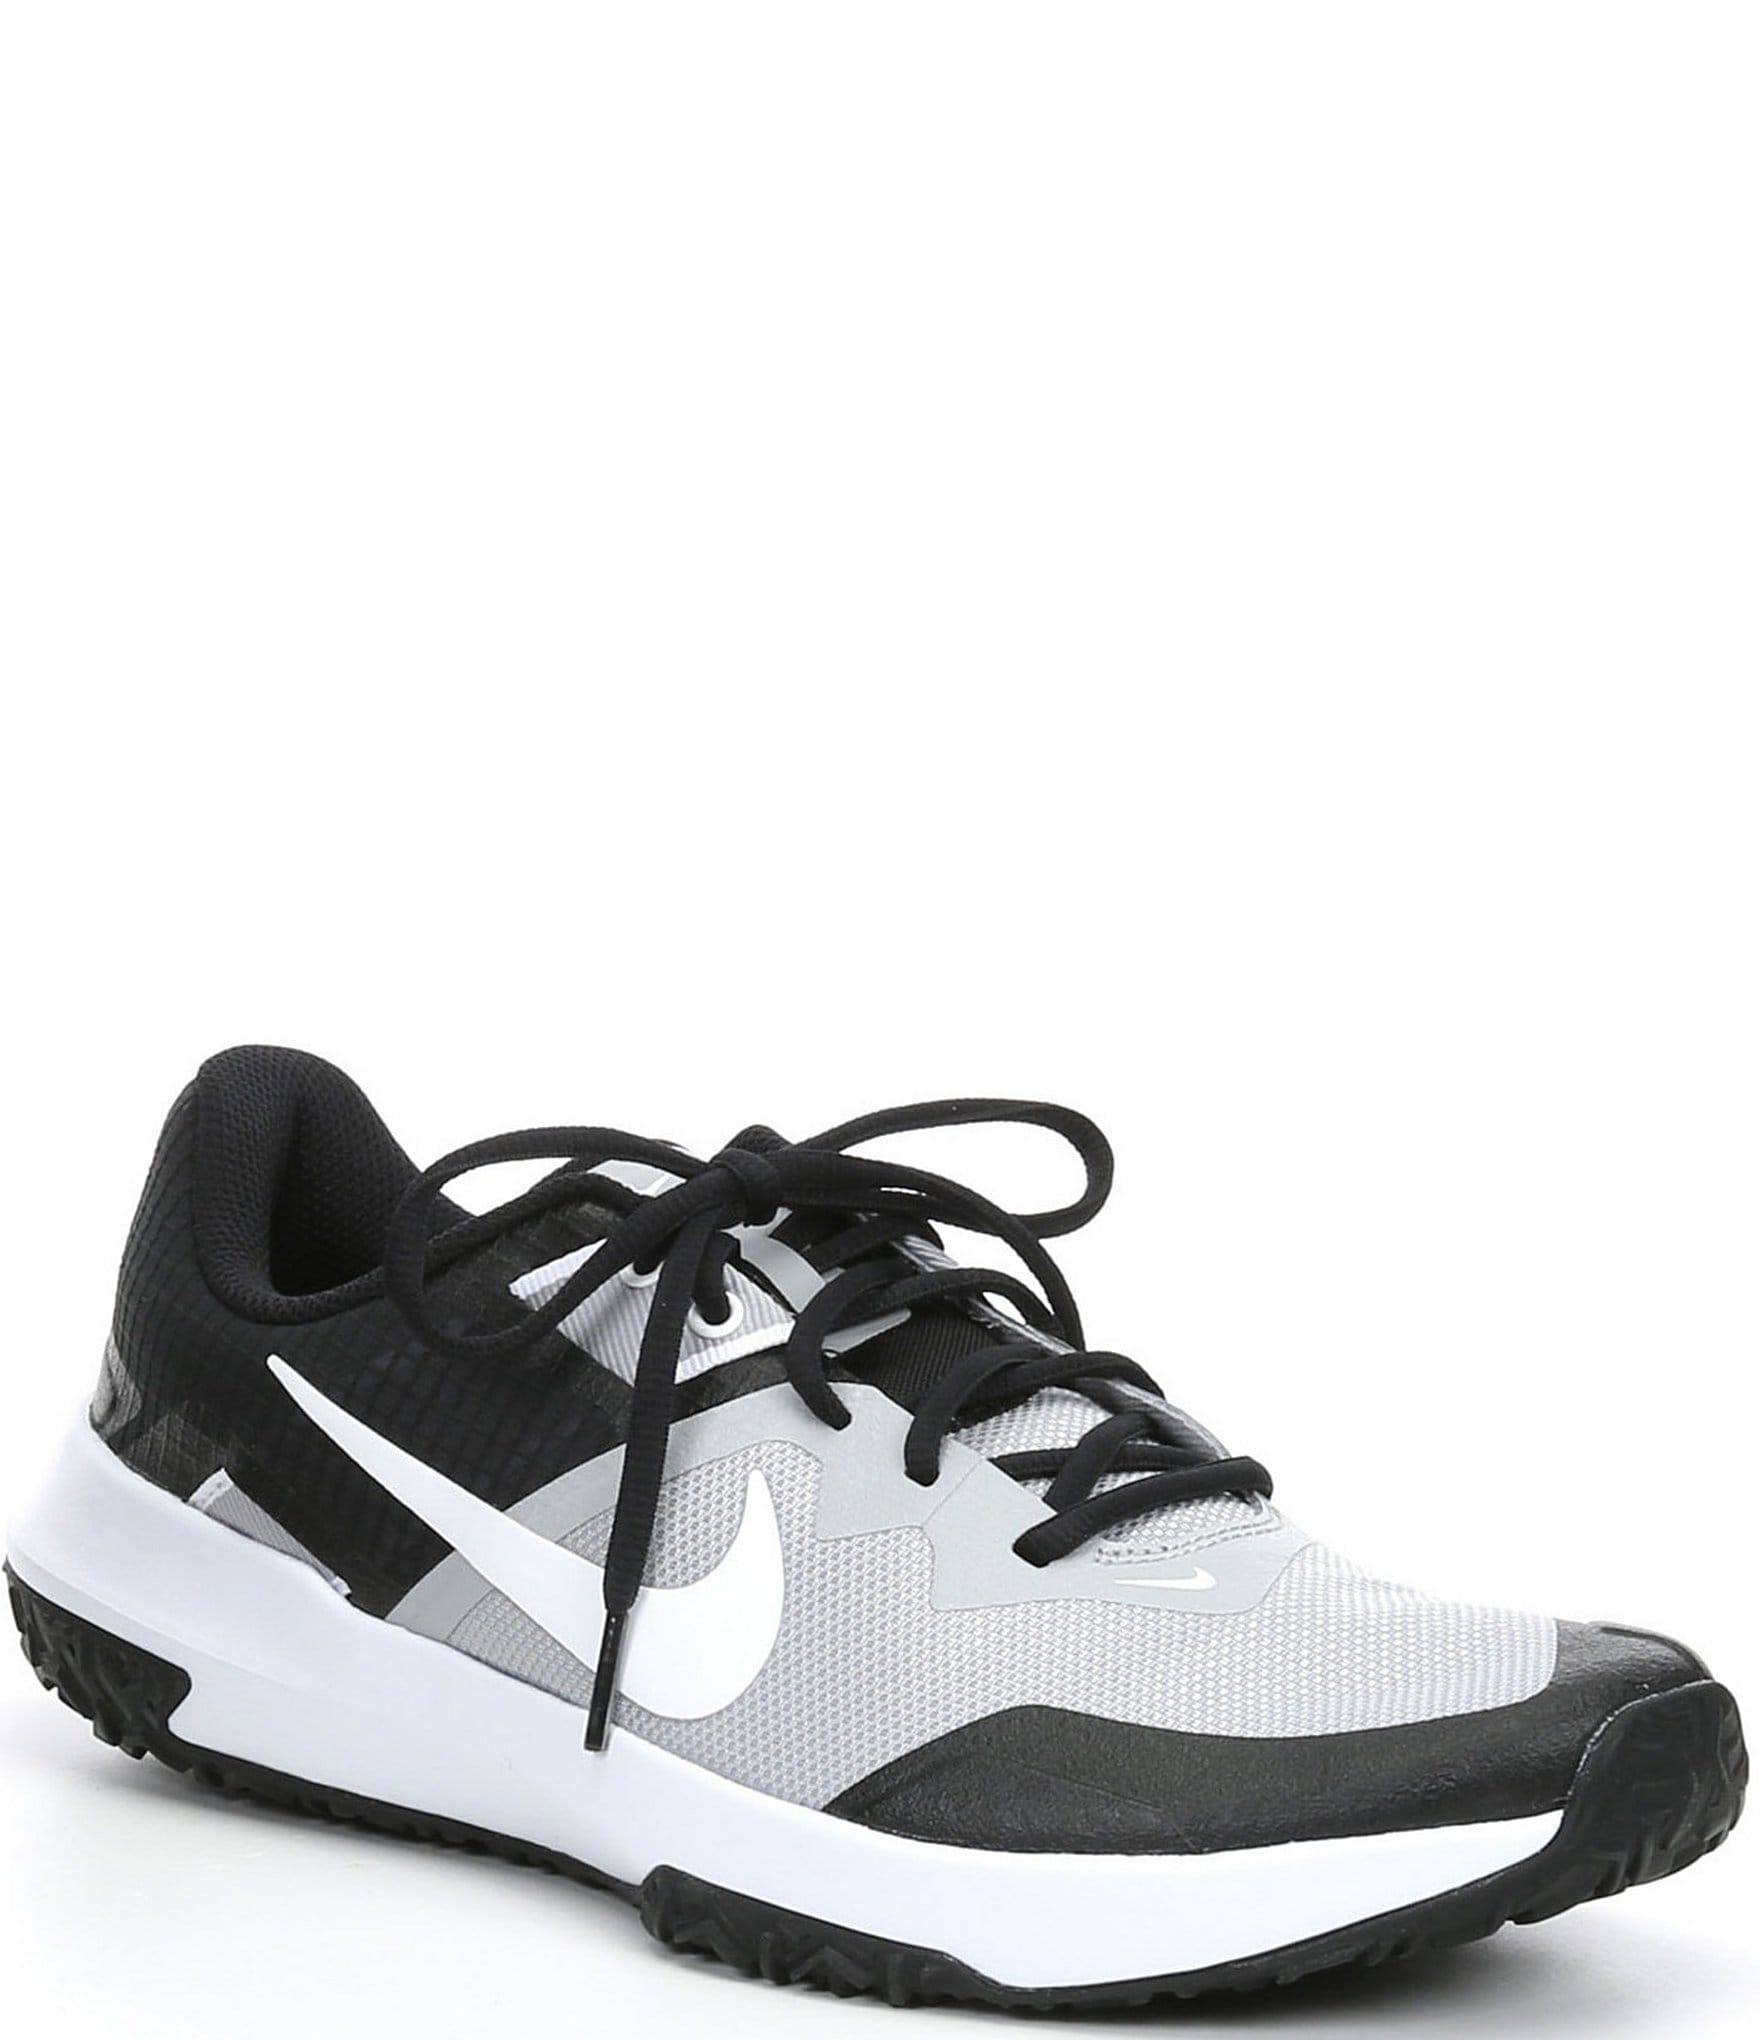 Nike Men's Varsity Compete TR 3 Training Shoes